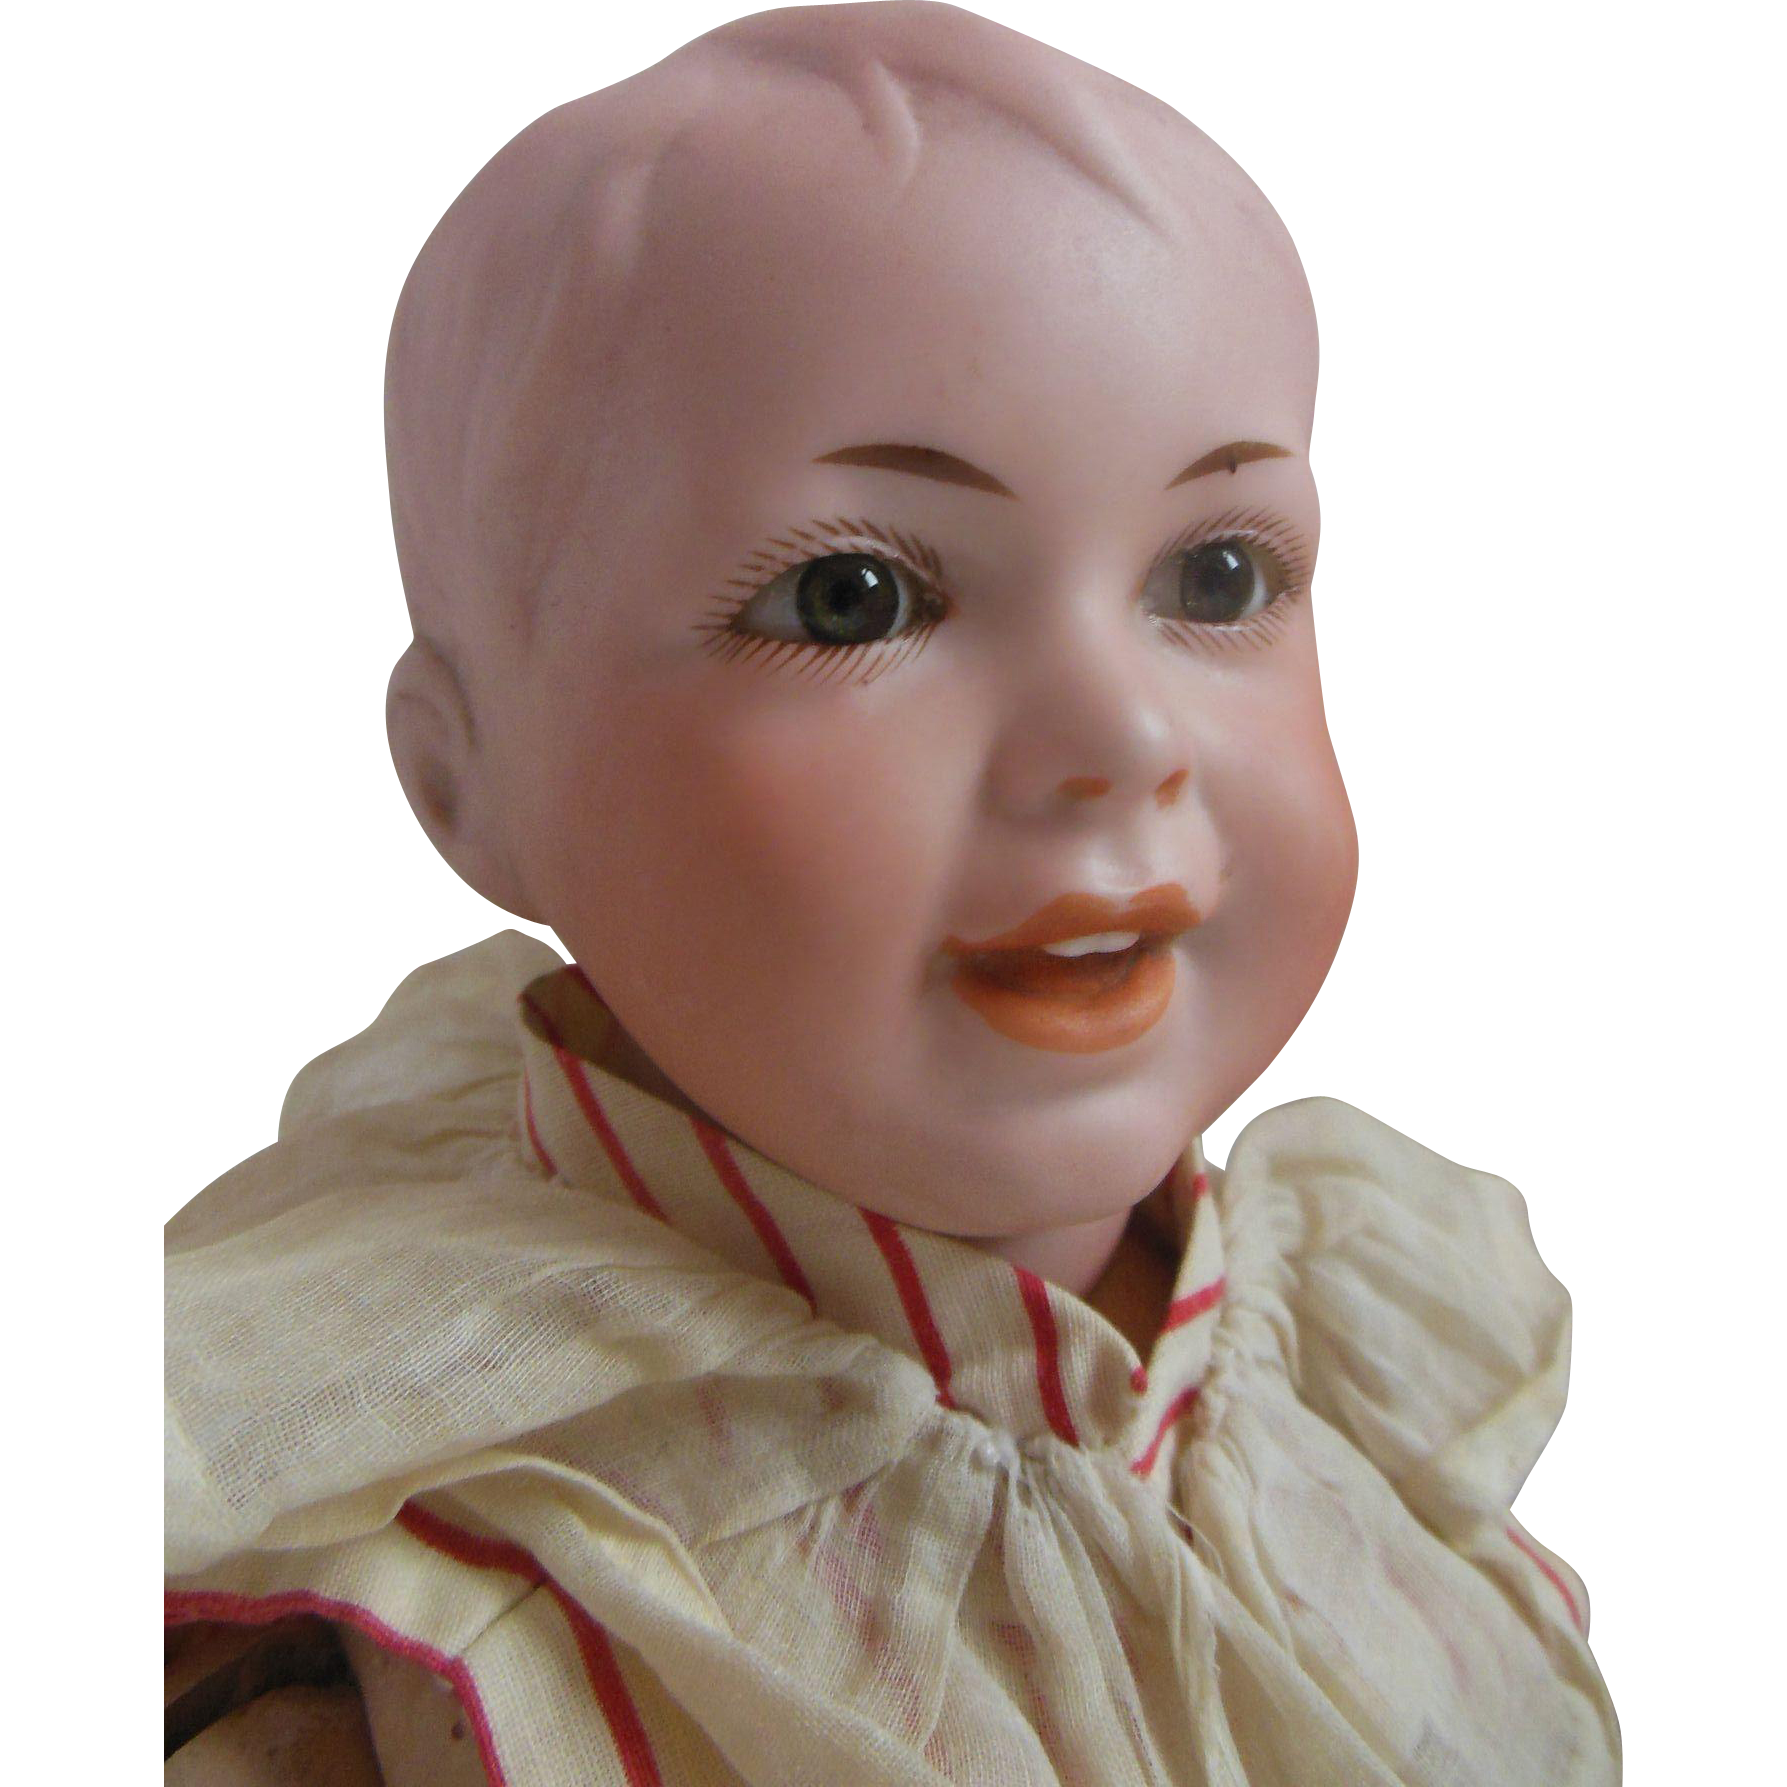 SFBJ 235 French Character doll 15 1/2 inch